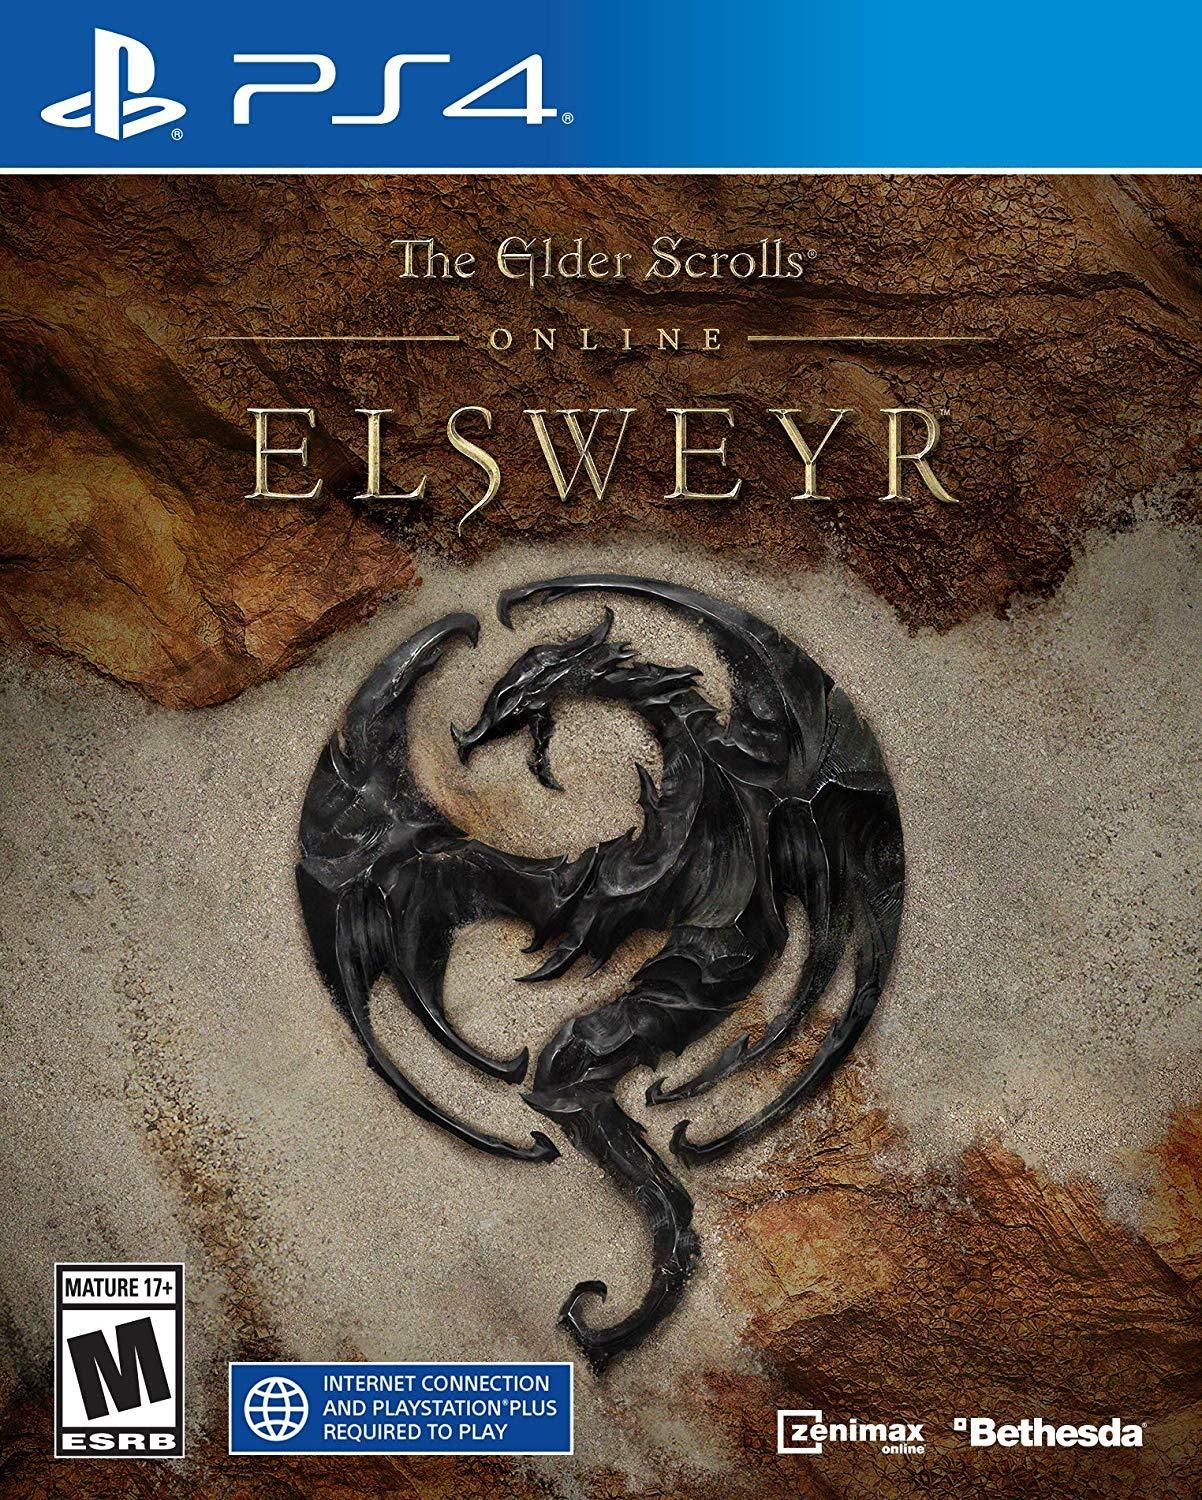 The Elder Scrolls Online Elsweyr Playstation 4 The Elder